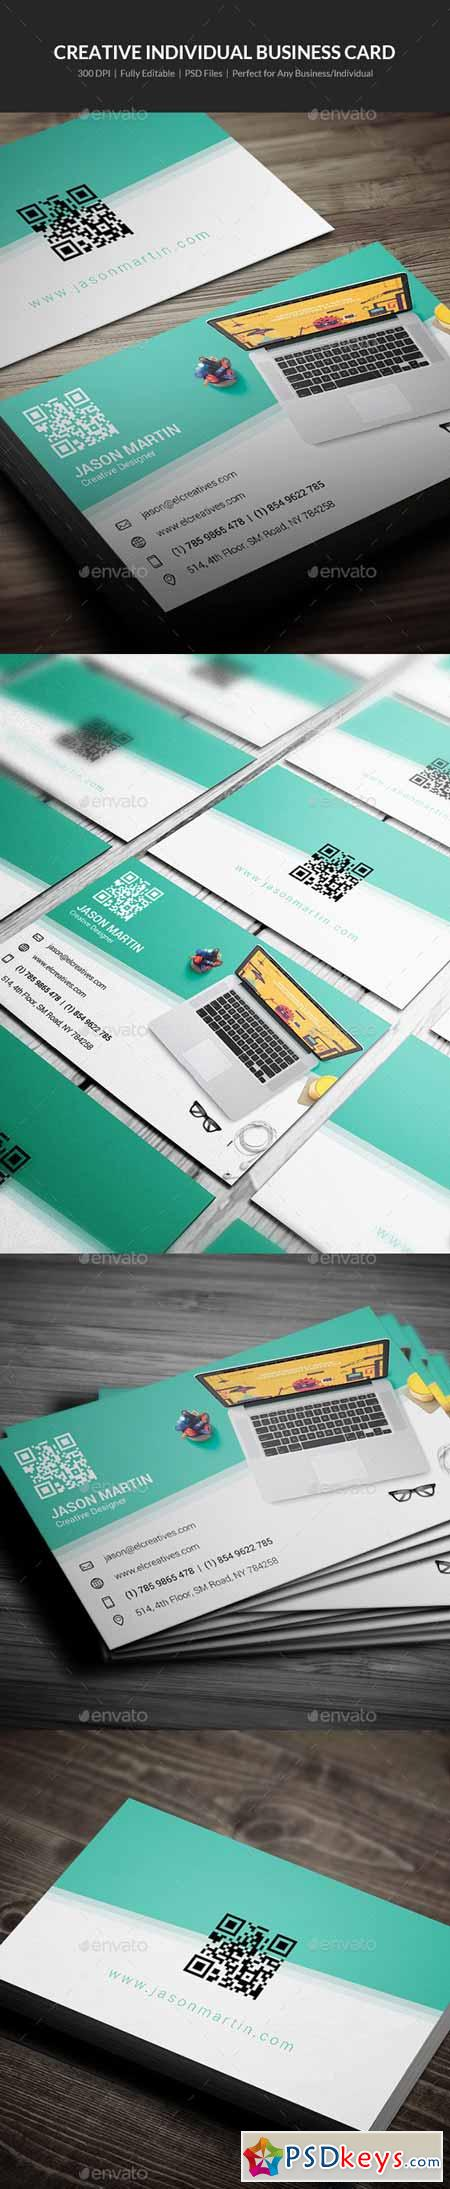 Creative Individual Business Card - 09 11735114